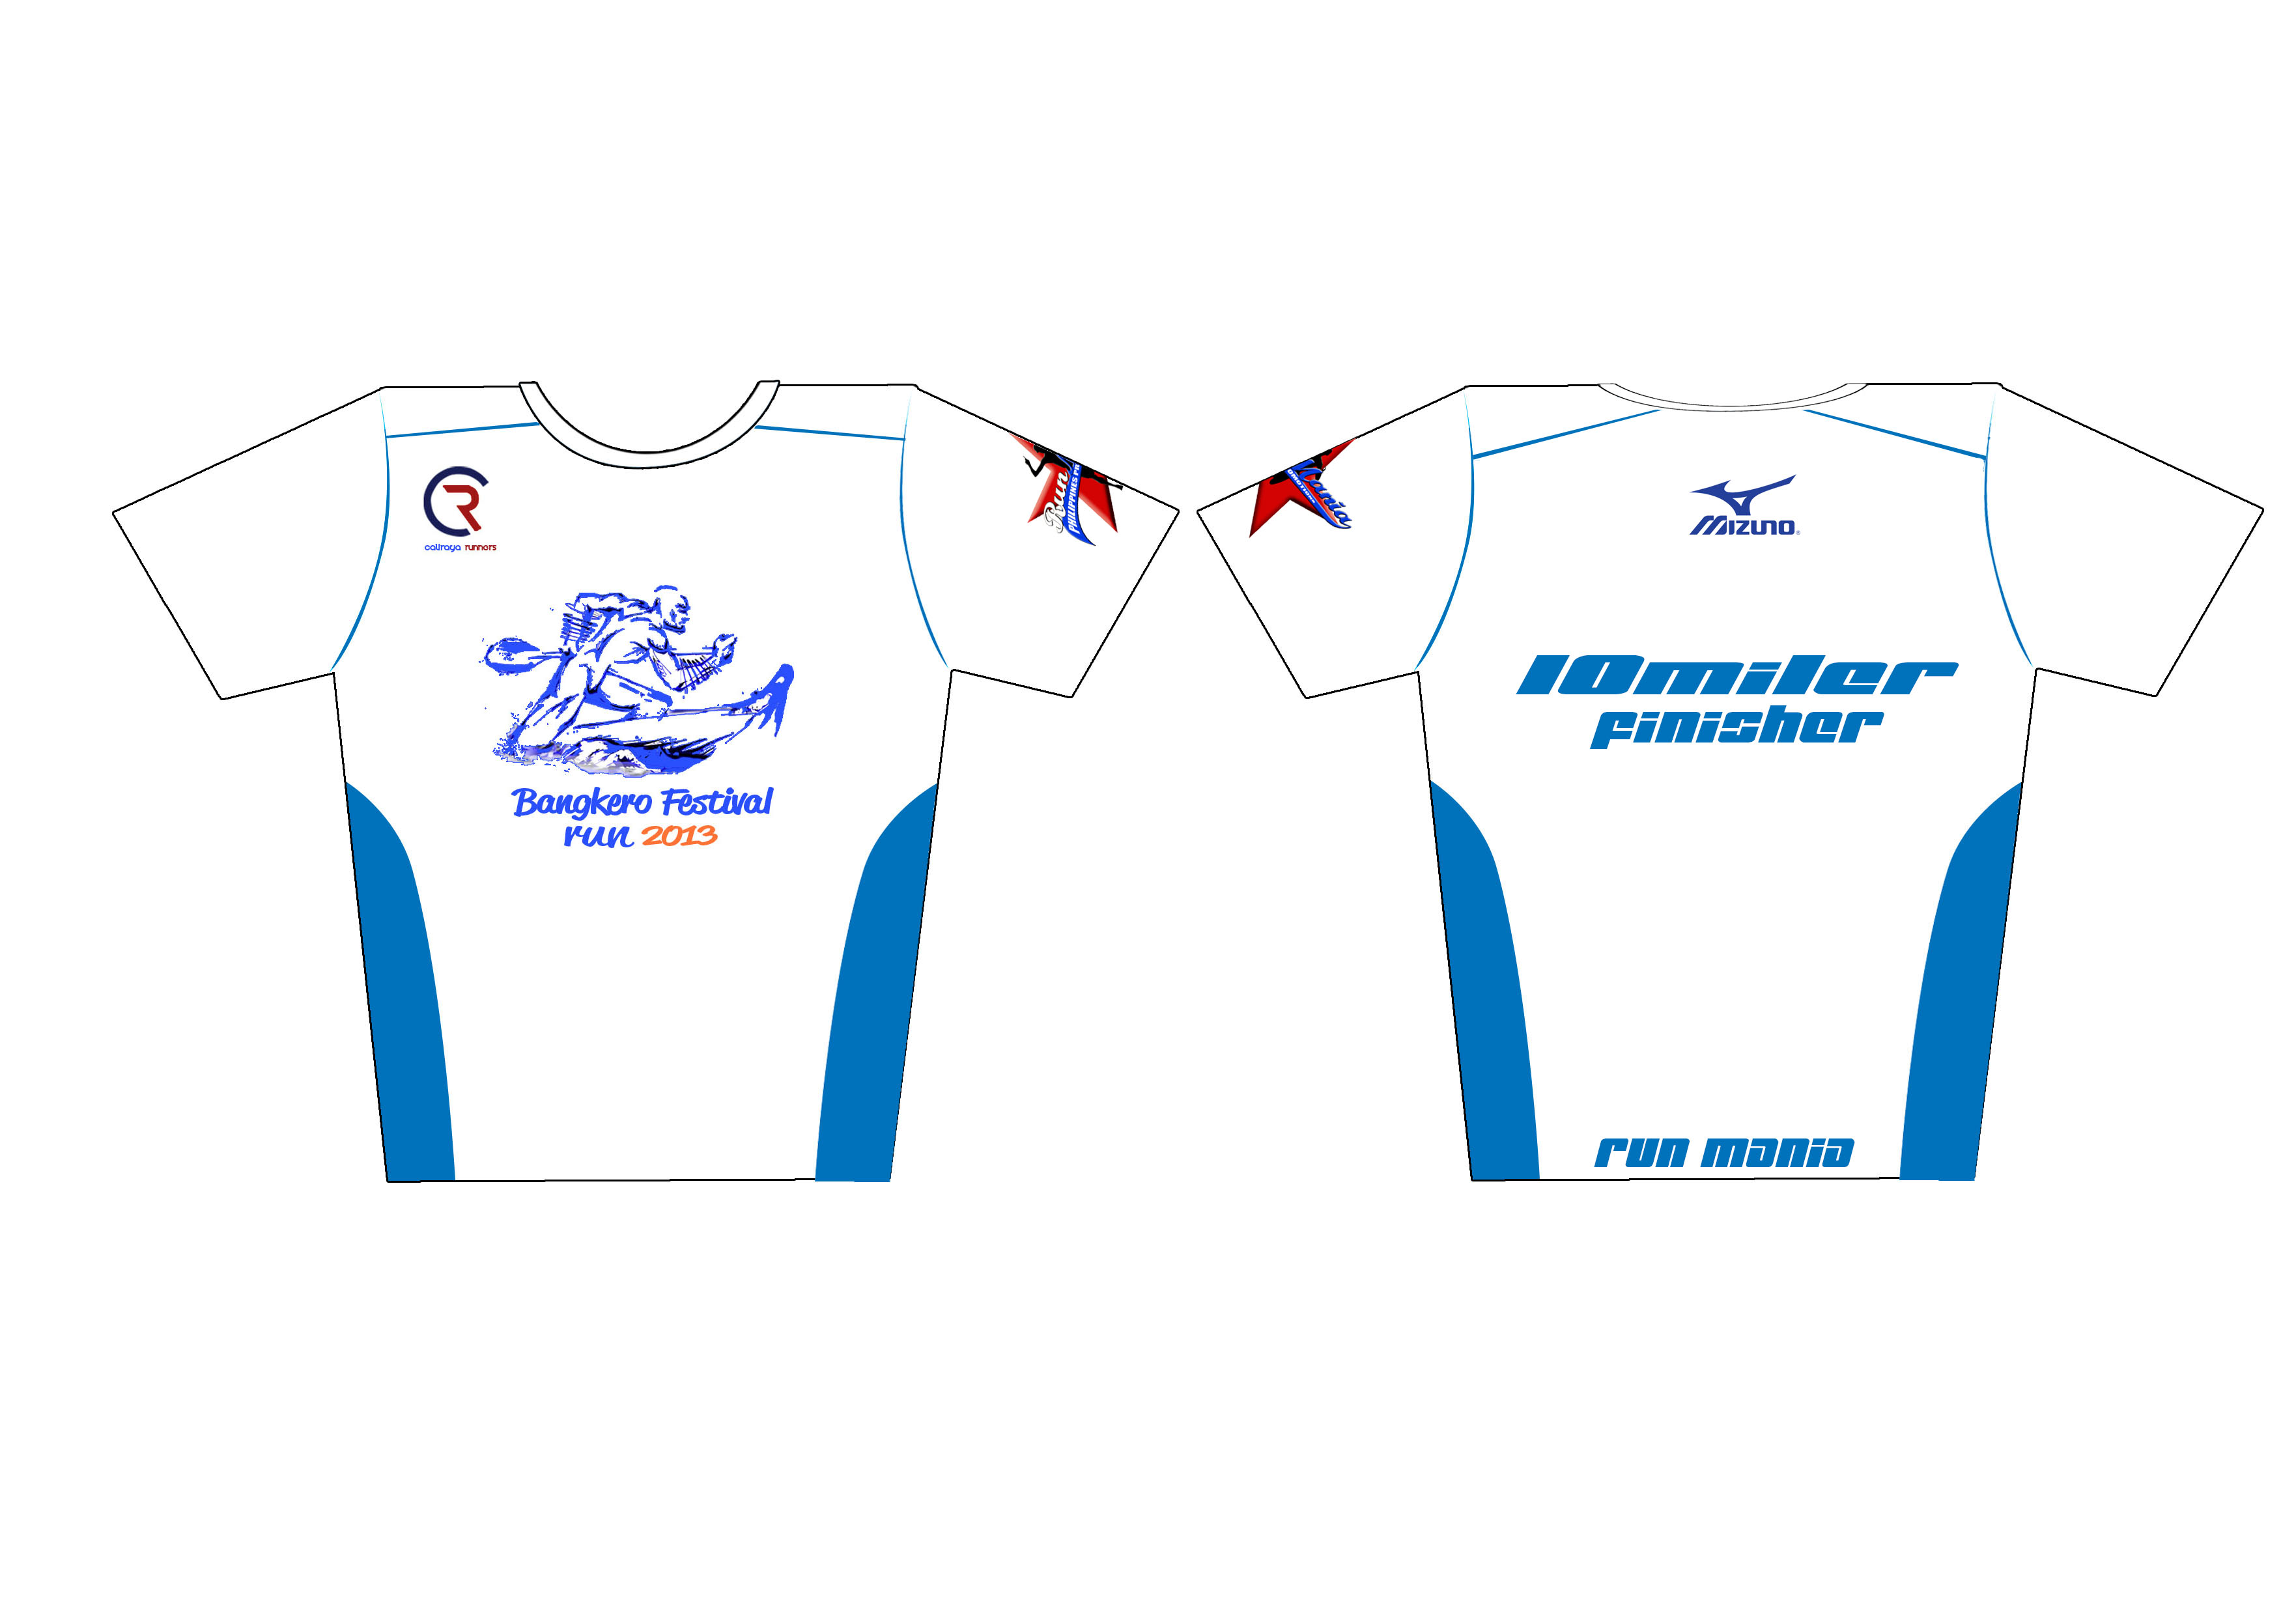 bangkero-festival-run-2013-finishers-shirt-design